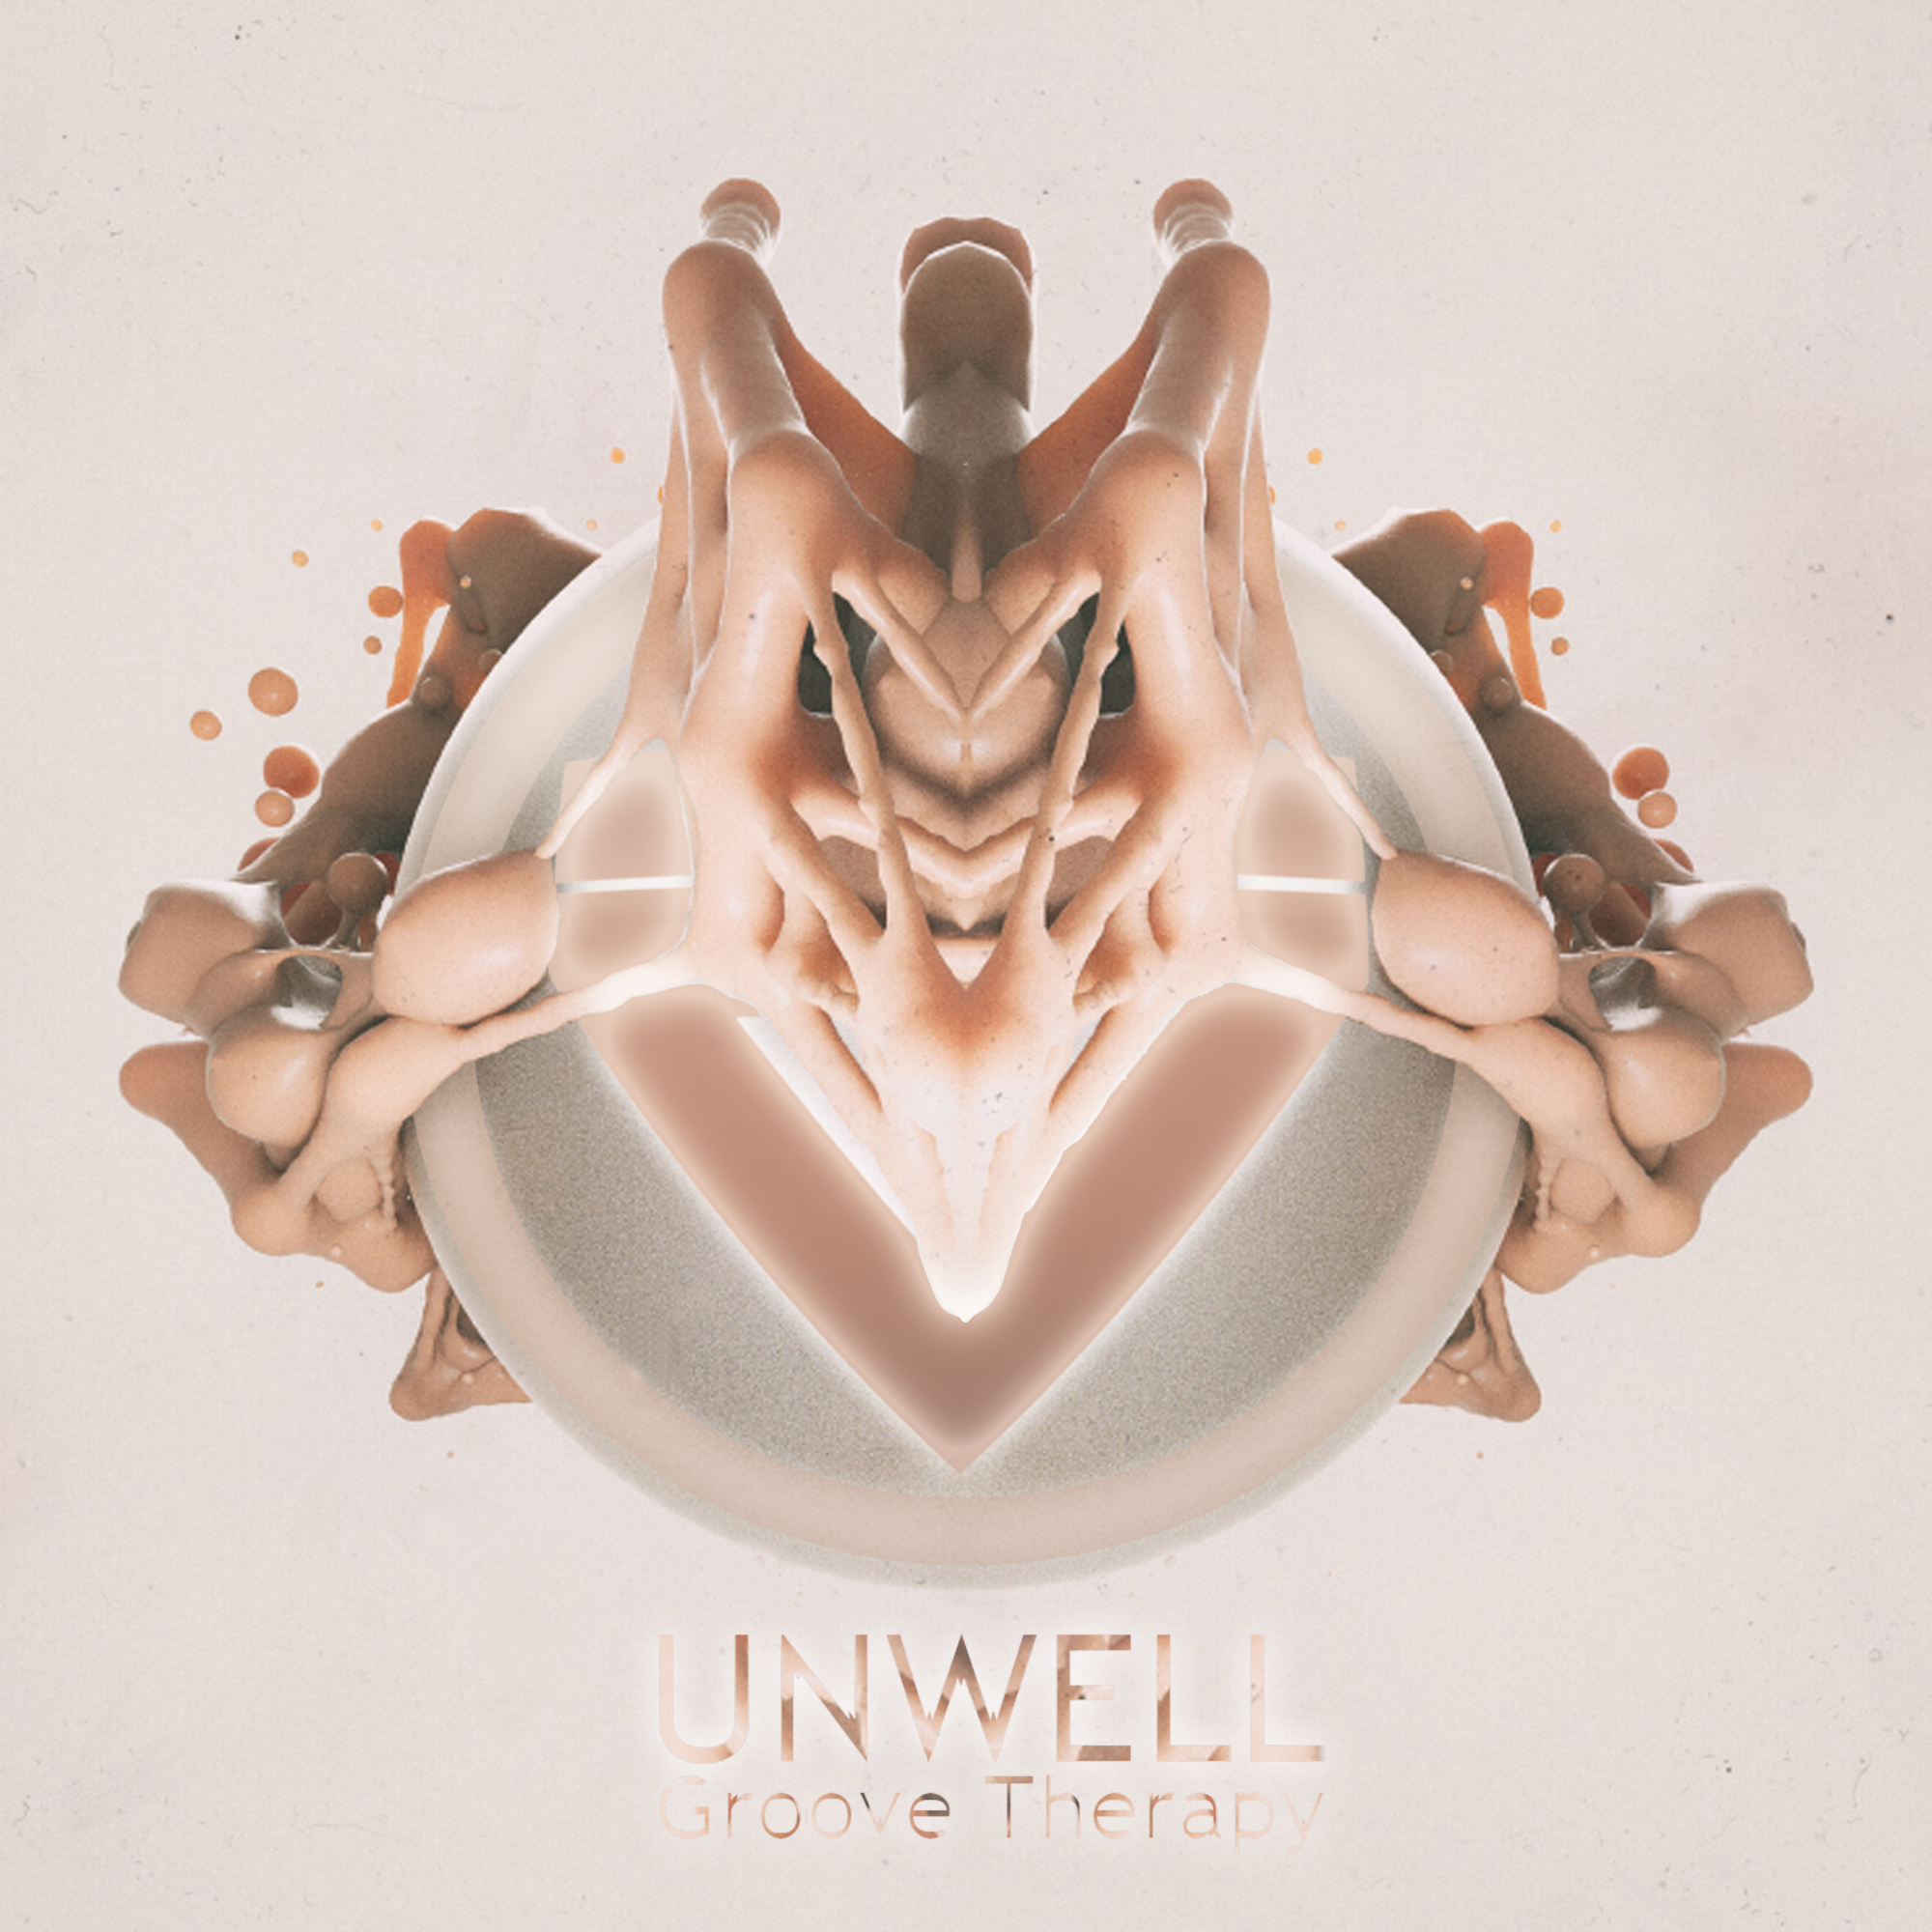 unwell cover